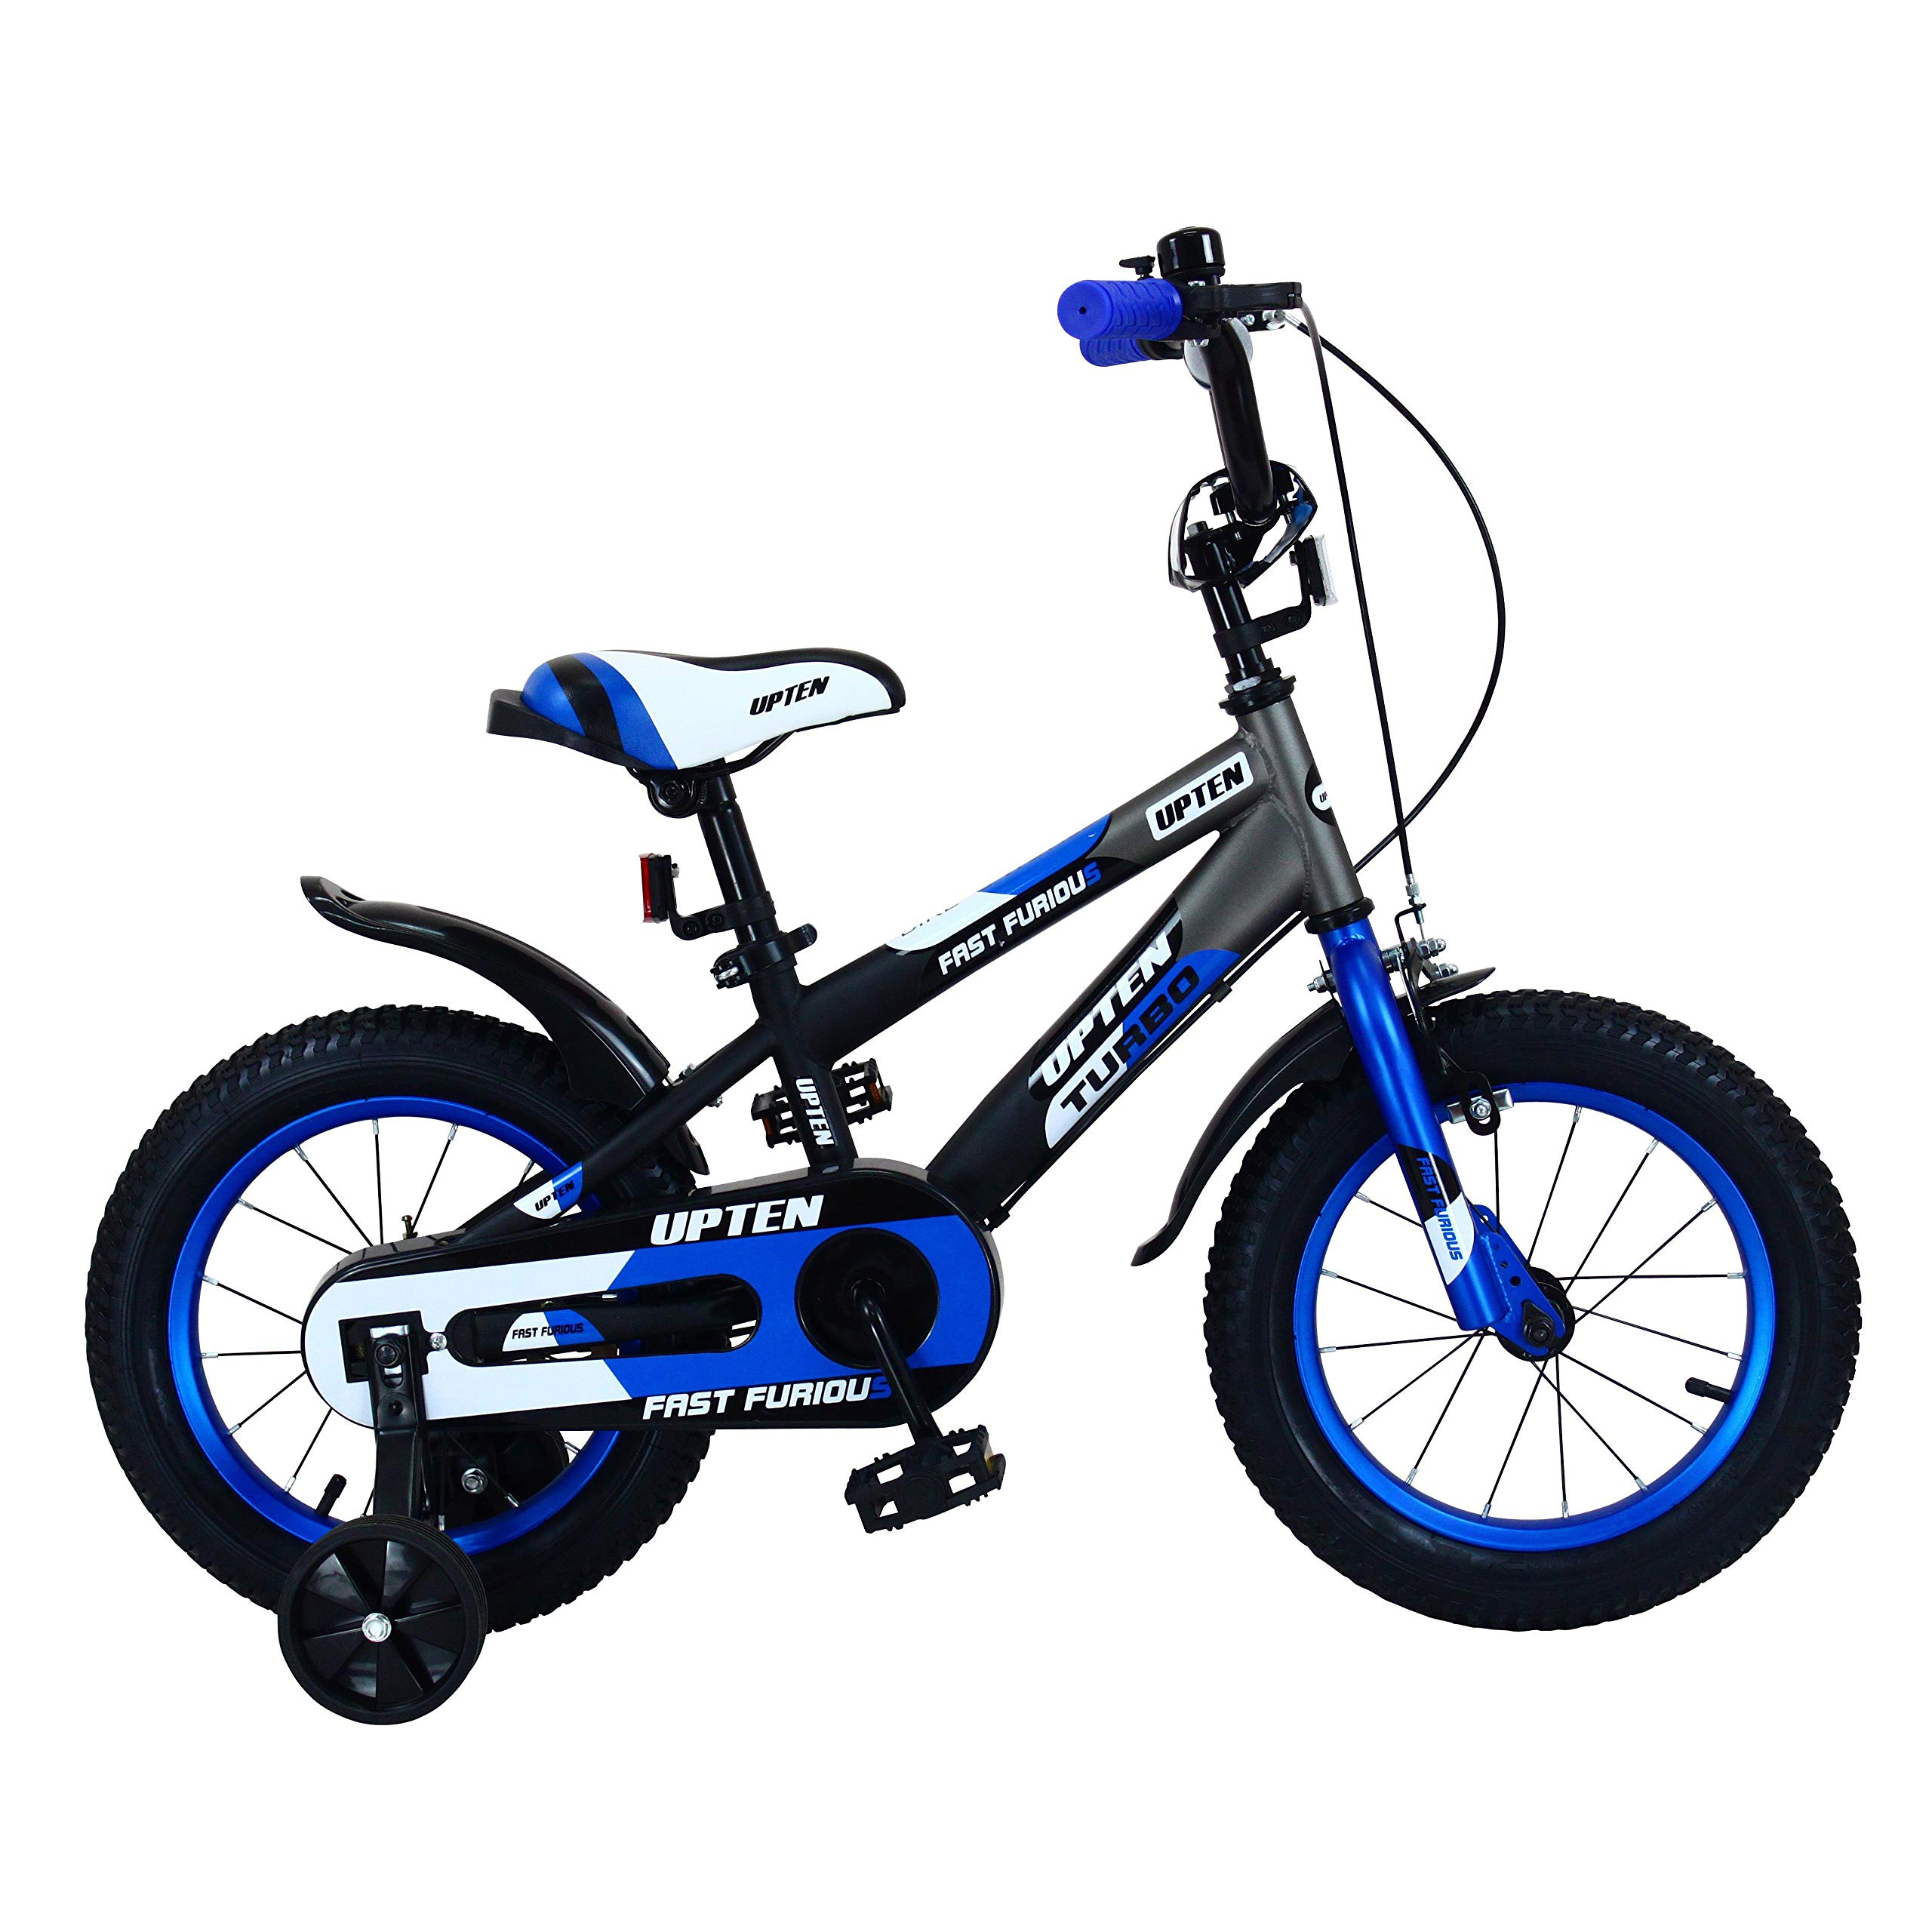 d160dc578d2 UPTEN Furious 18 inch Kids bike children bicycle cycle Price in UAE ...